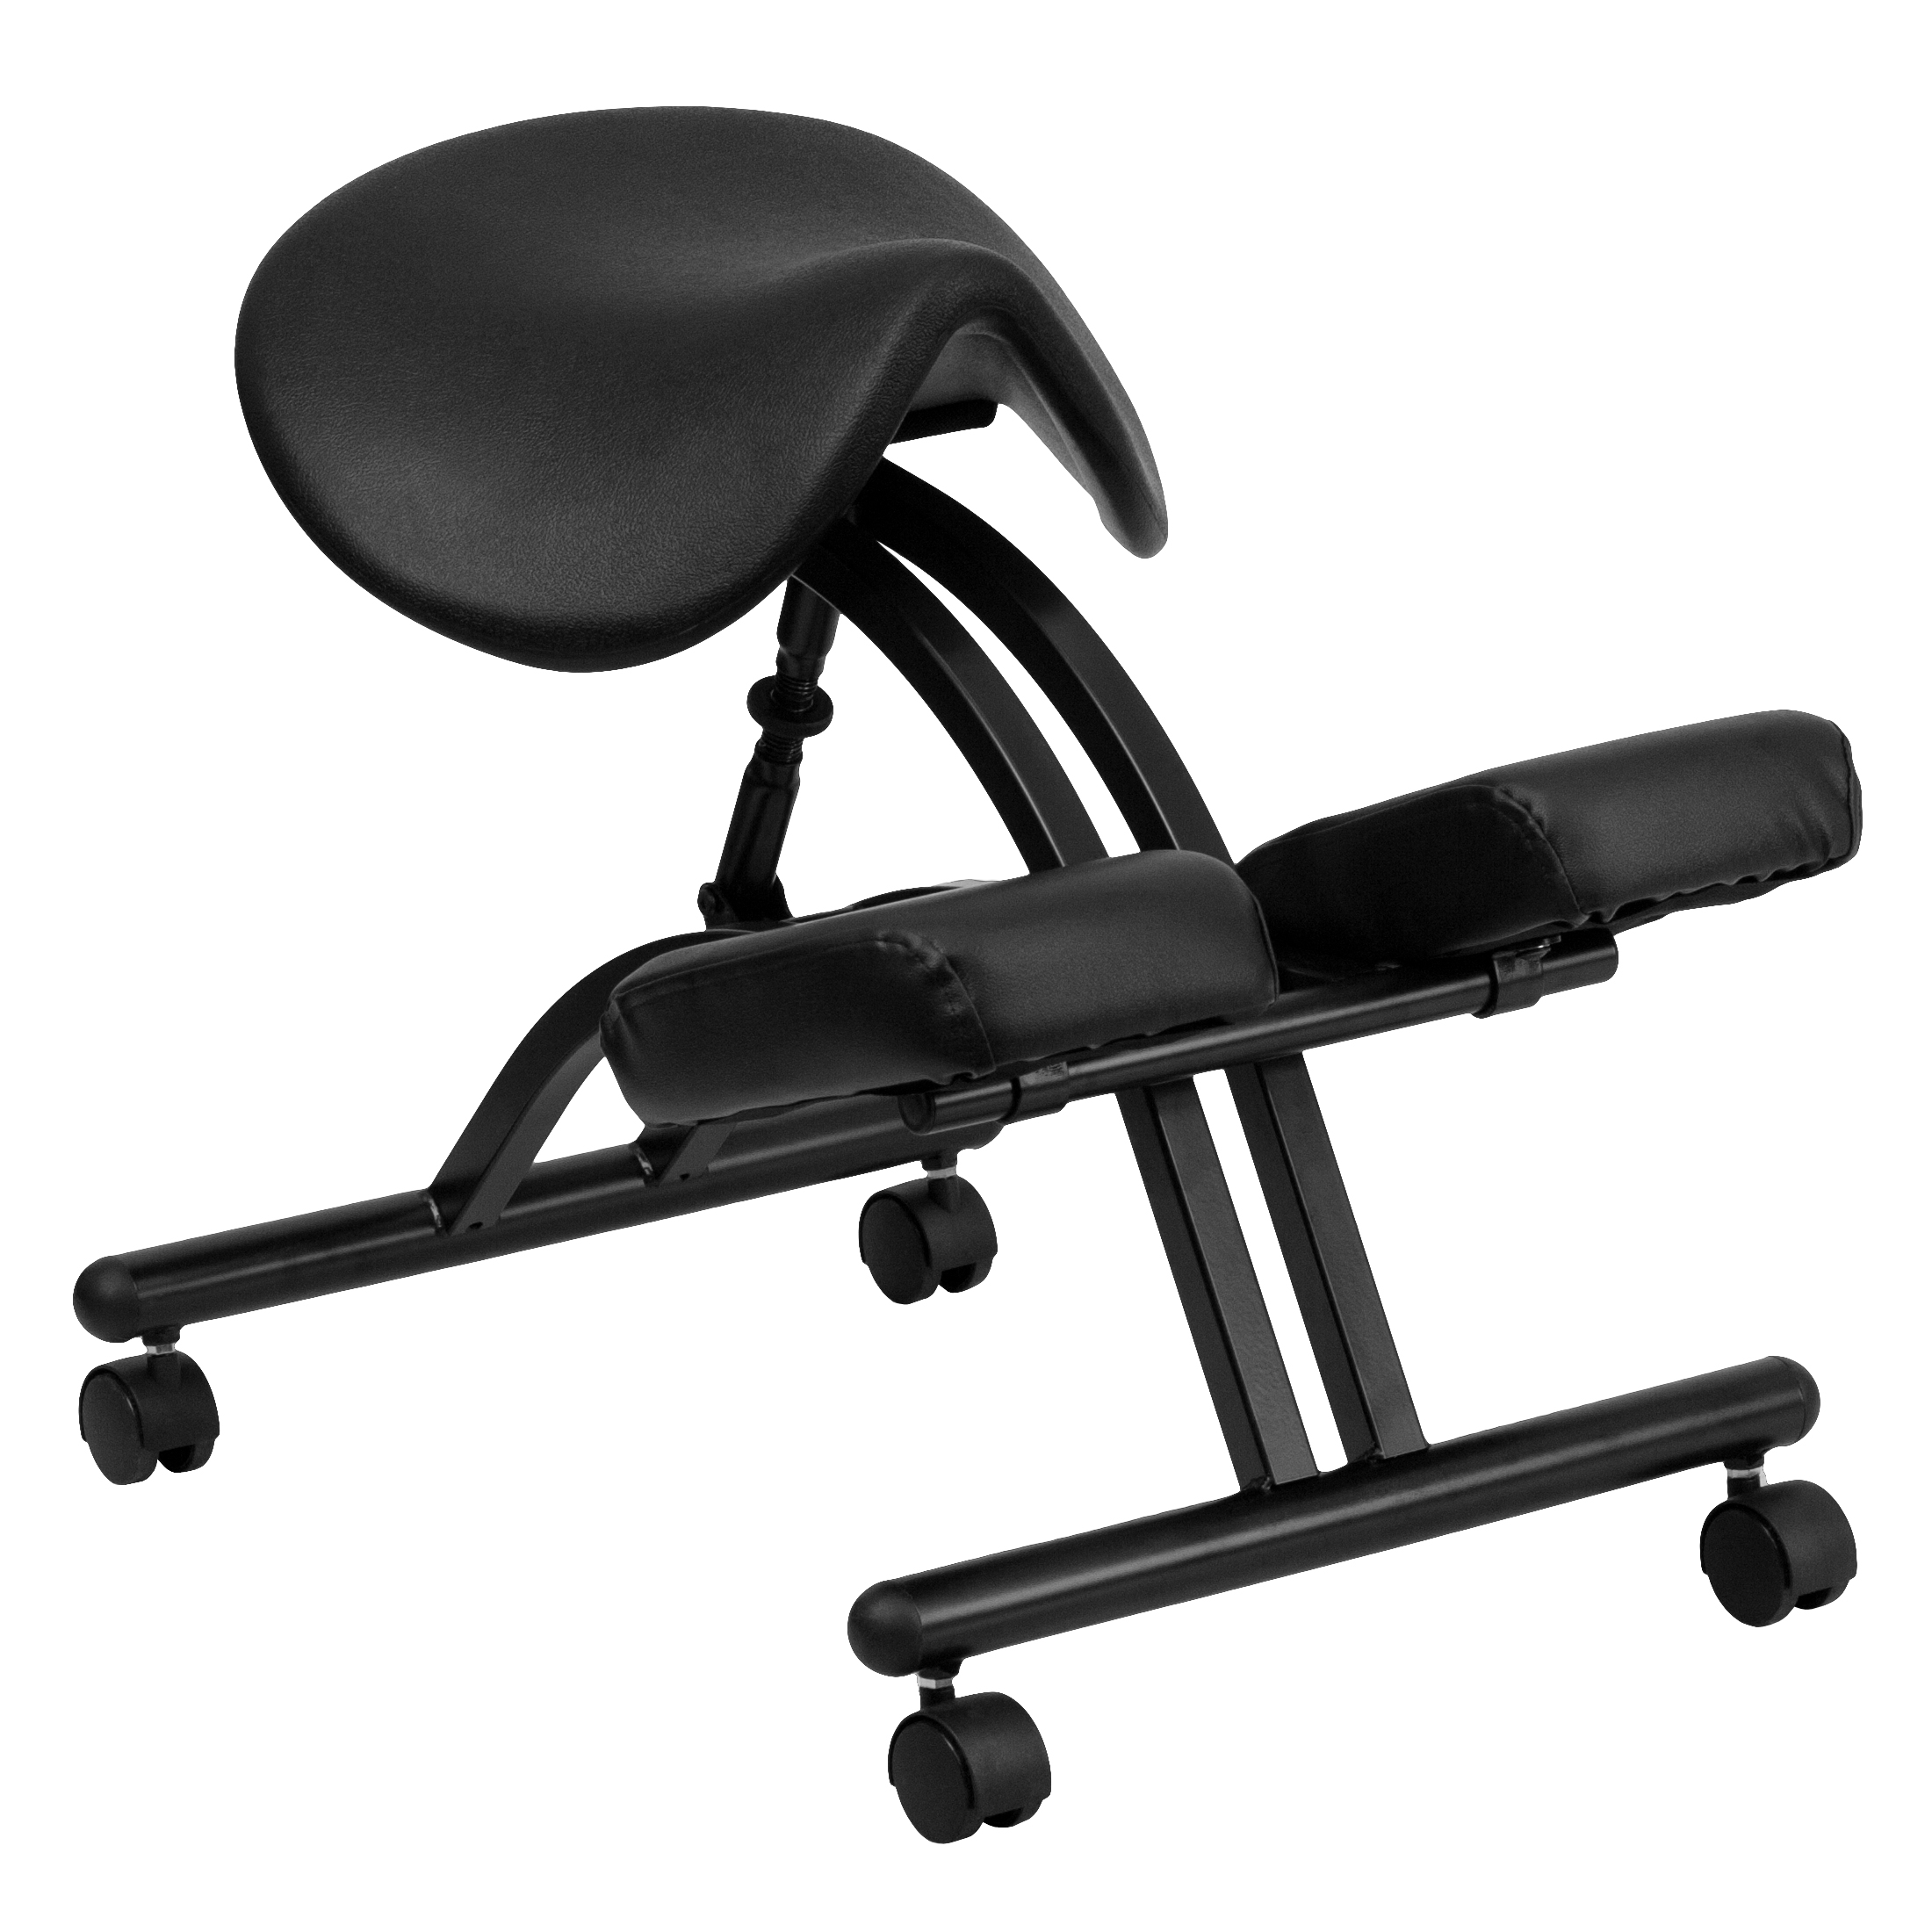 Flash Ergonomic Kneeling Chair With Black Saddle Seat By